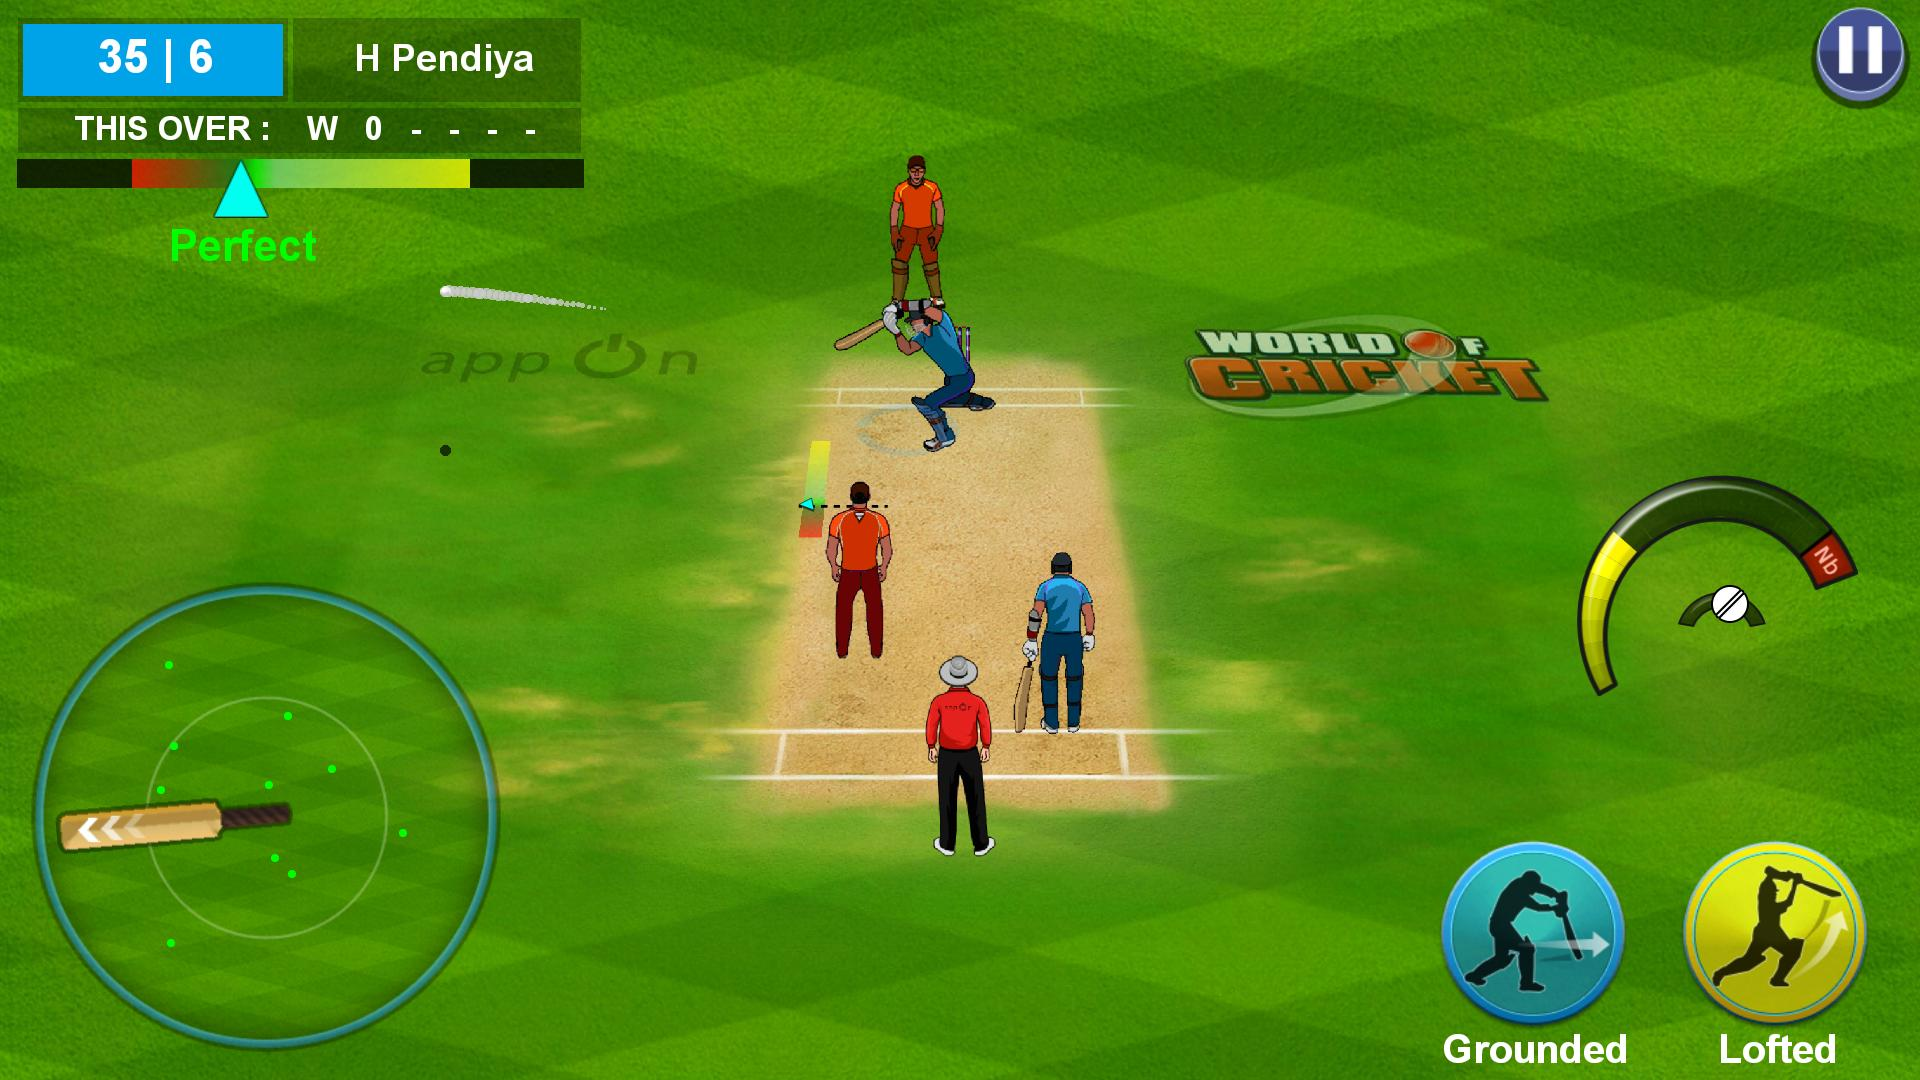 World of Cricket ™ : World Cup 2019 for Android - APK Download